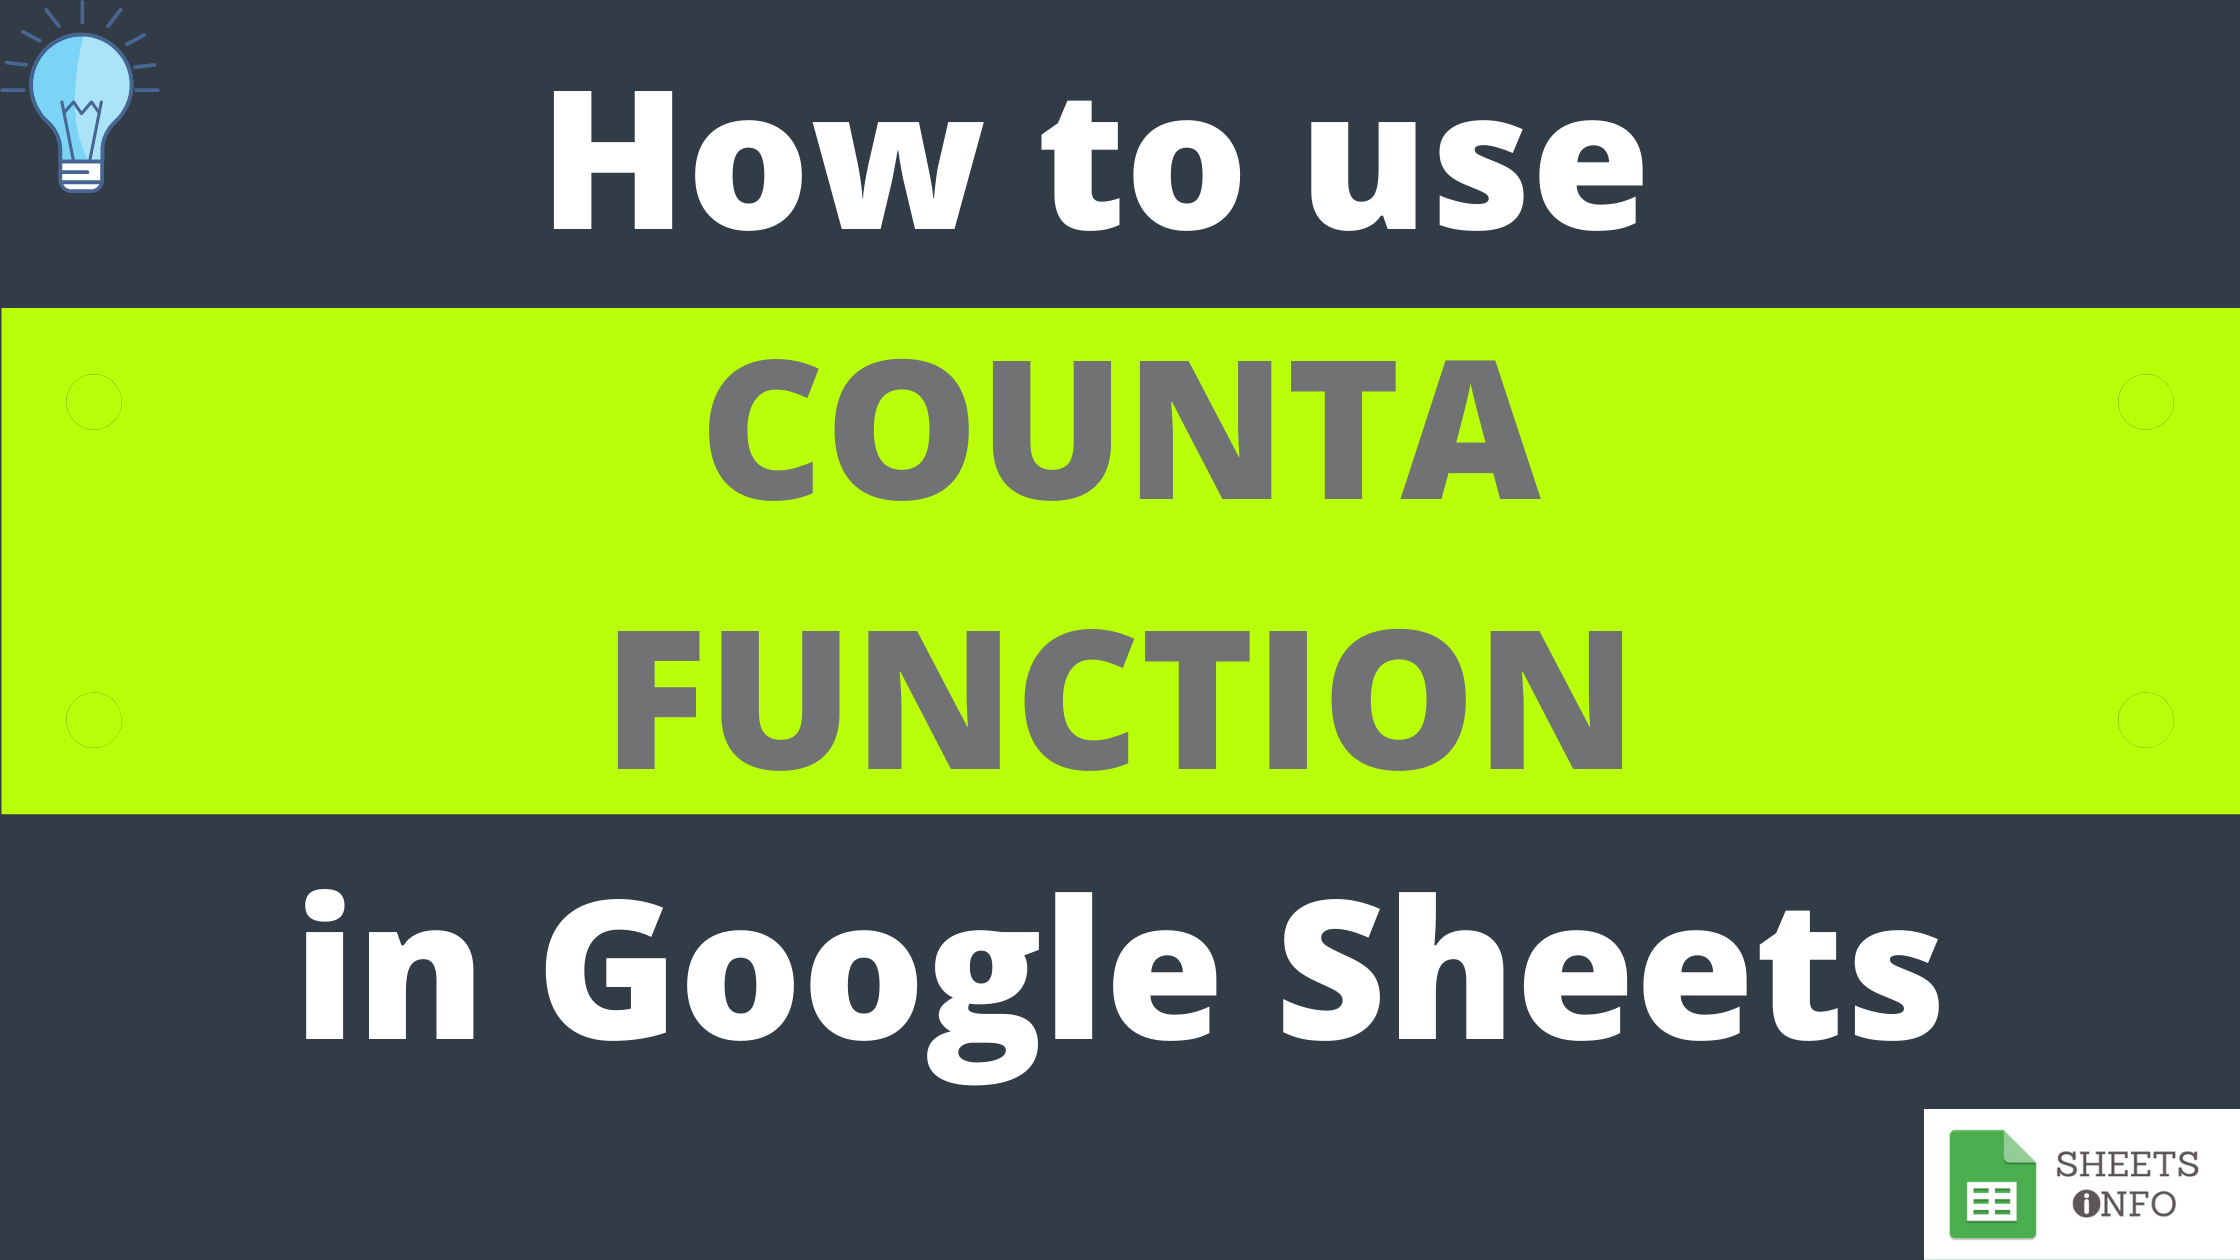 COUNTA Function in Google Sheets